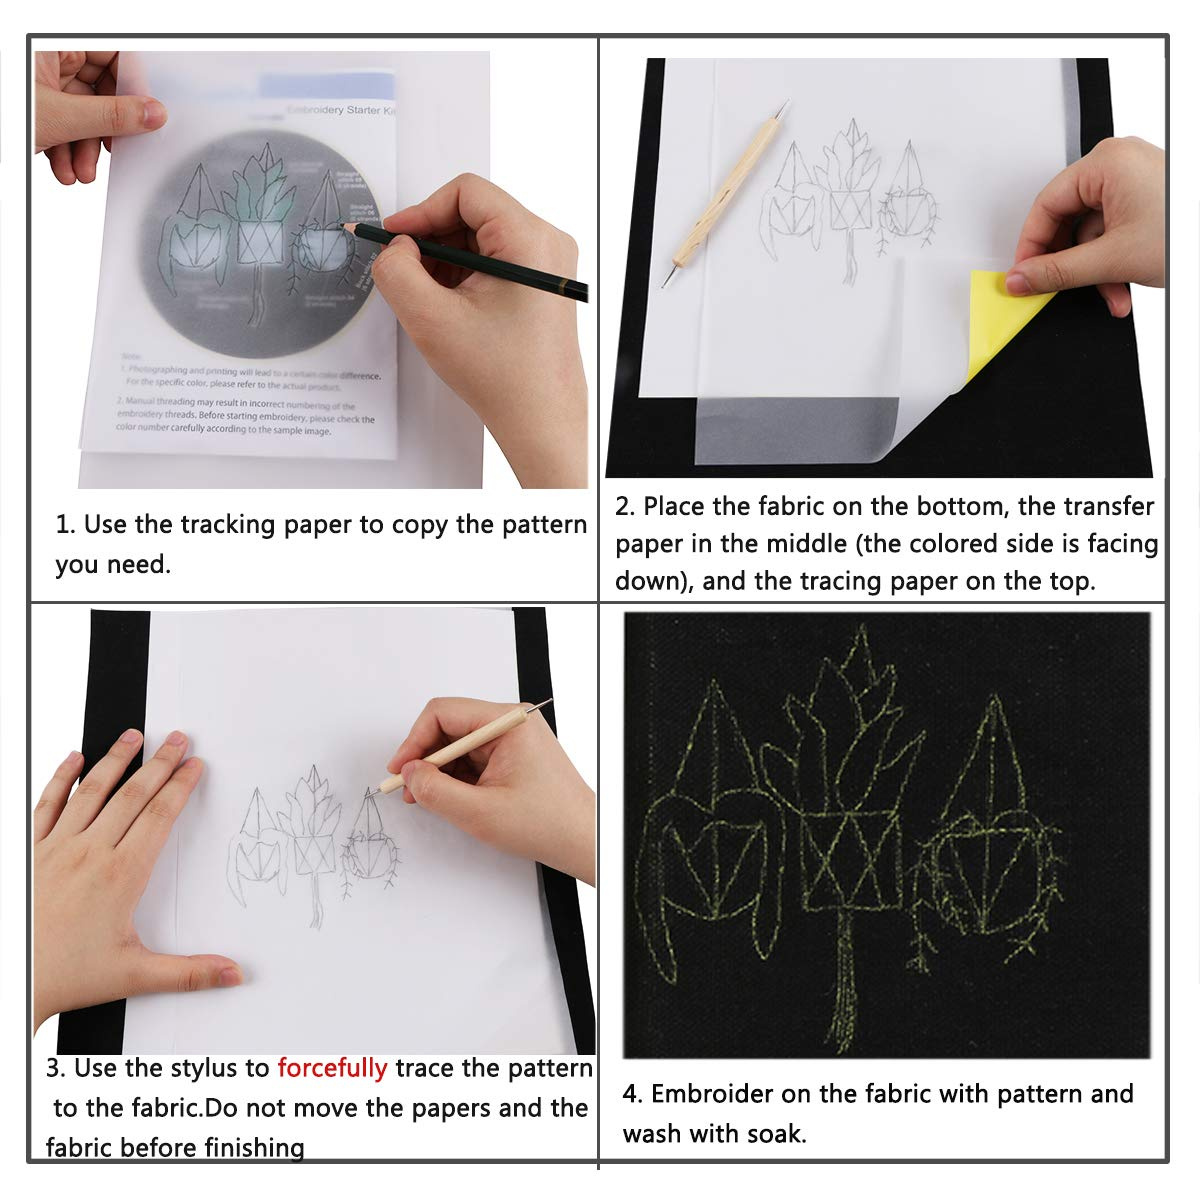 Gift packaging Wei/ß 10 Meter Craft Drafting T/üftel-Lise Tear-resistant Sewing Pattern Paper/ /Copy It The Easy Way Versatile Tracing Paper for Sewing